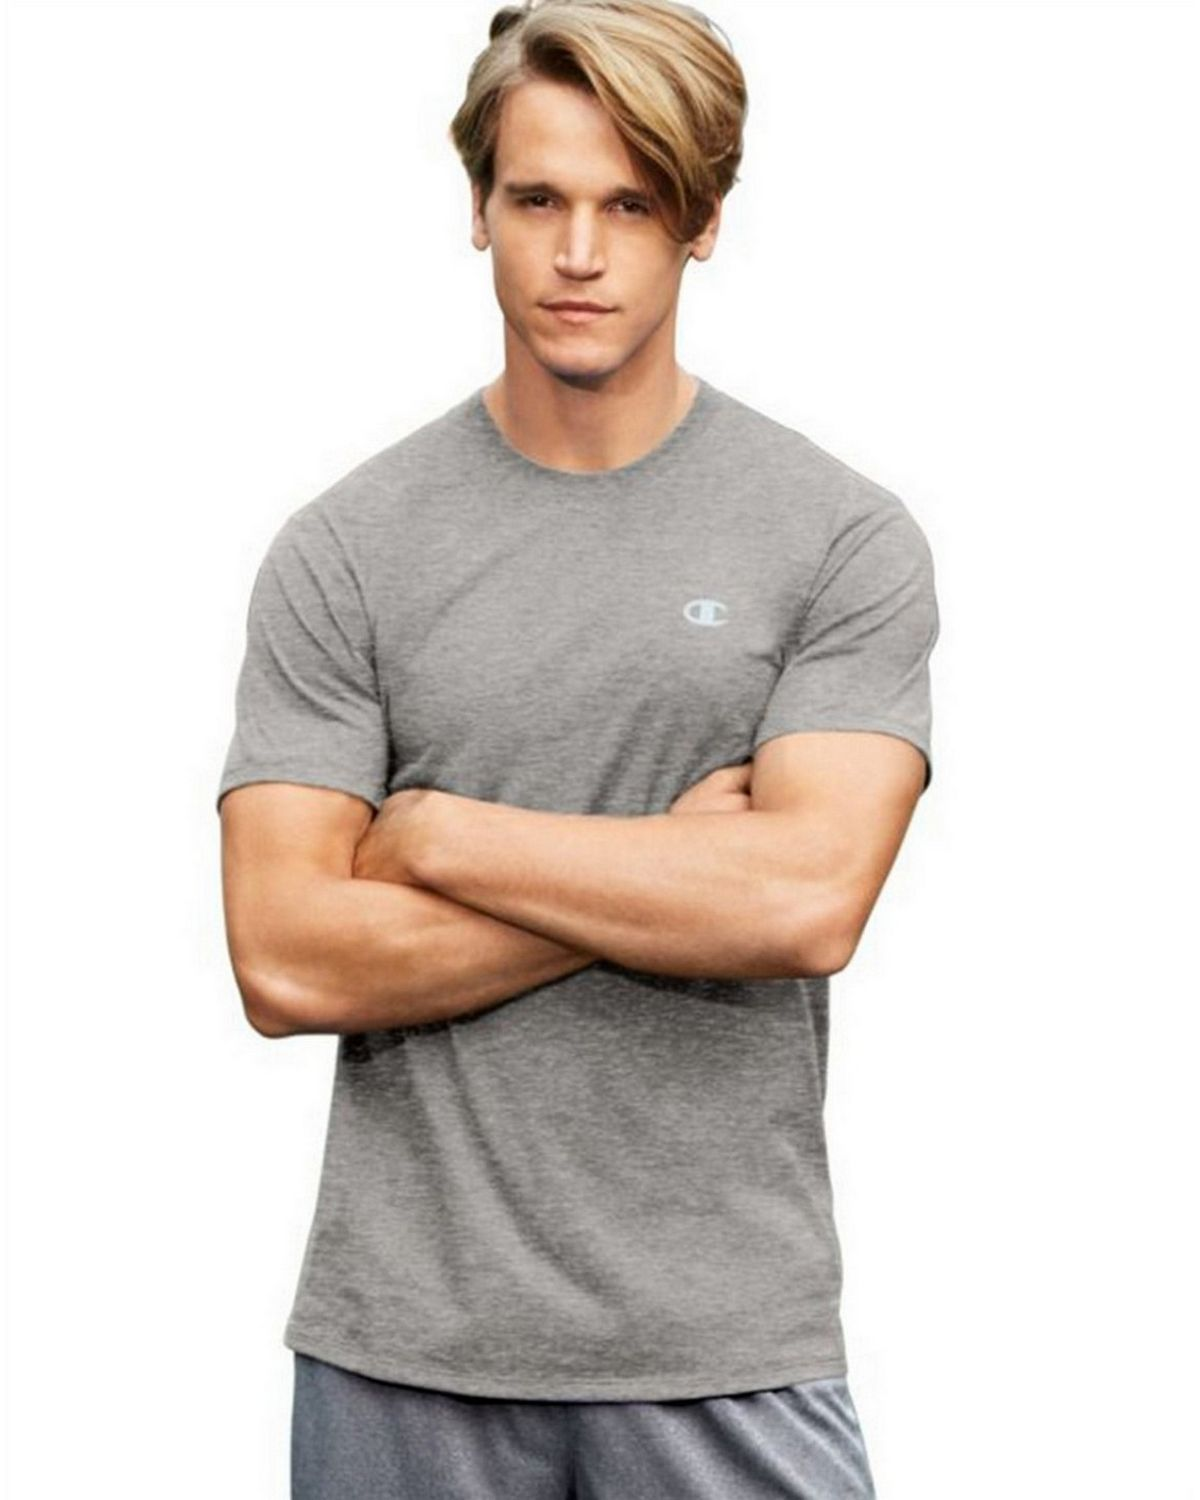 Champion T0351 Vapor Mens Cotton Tee - Oxford Grey - S T0351